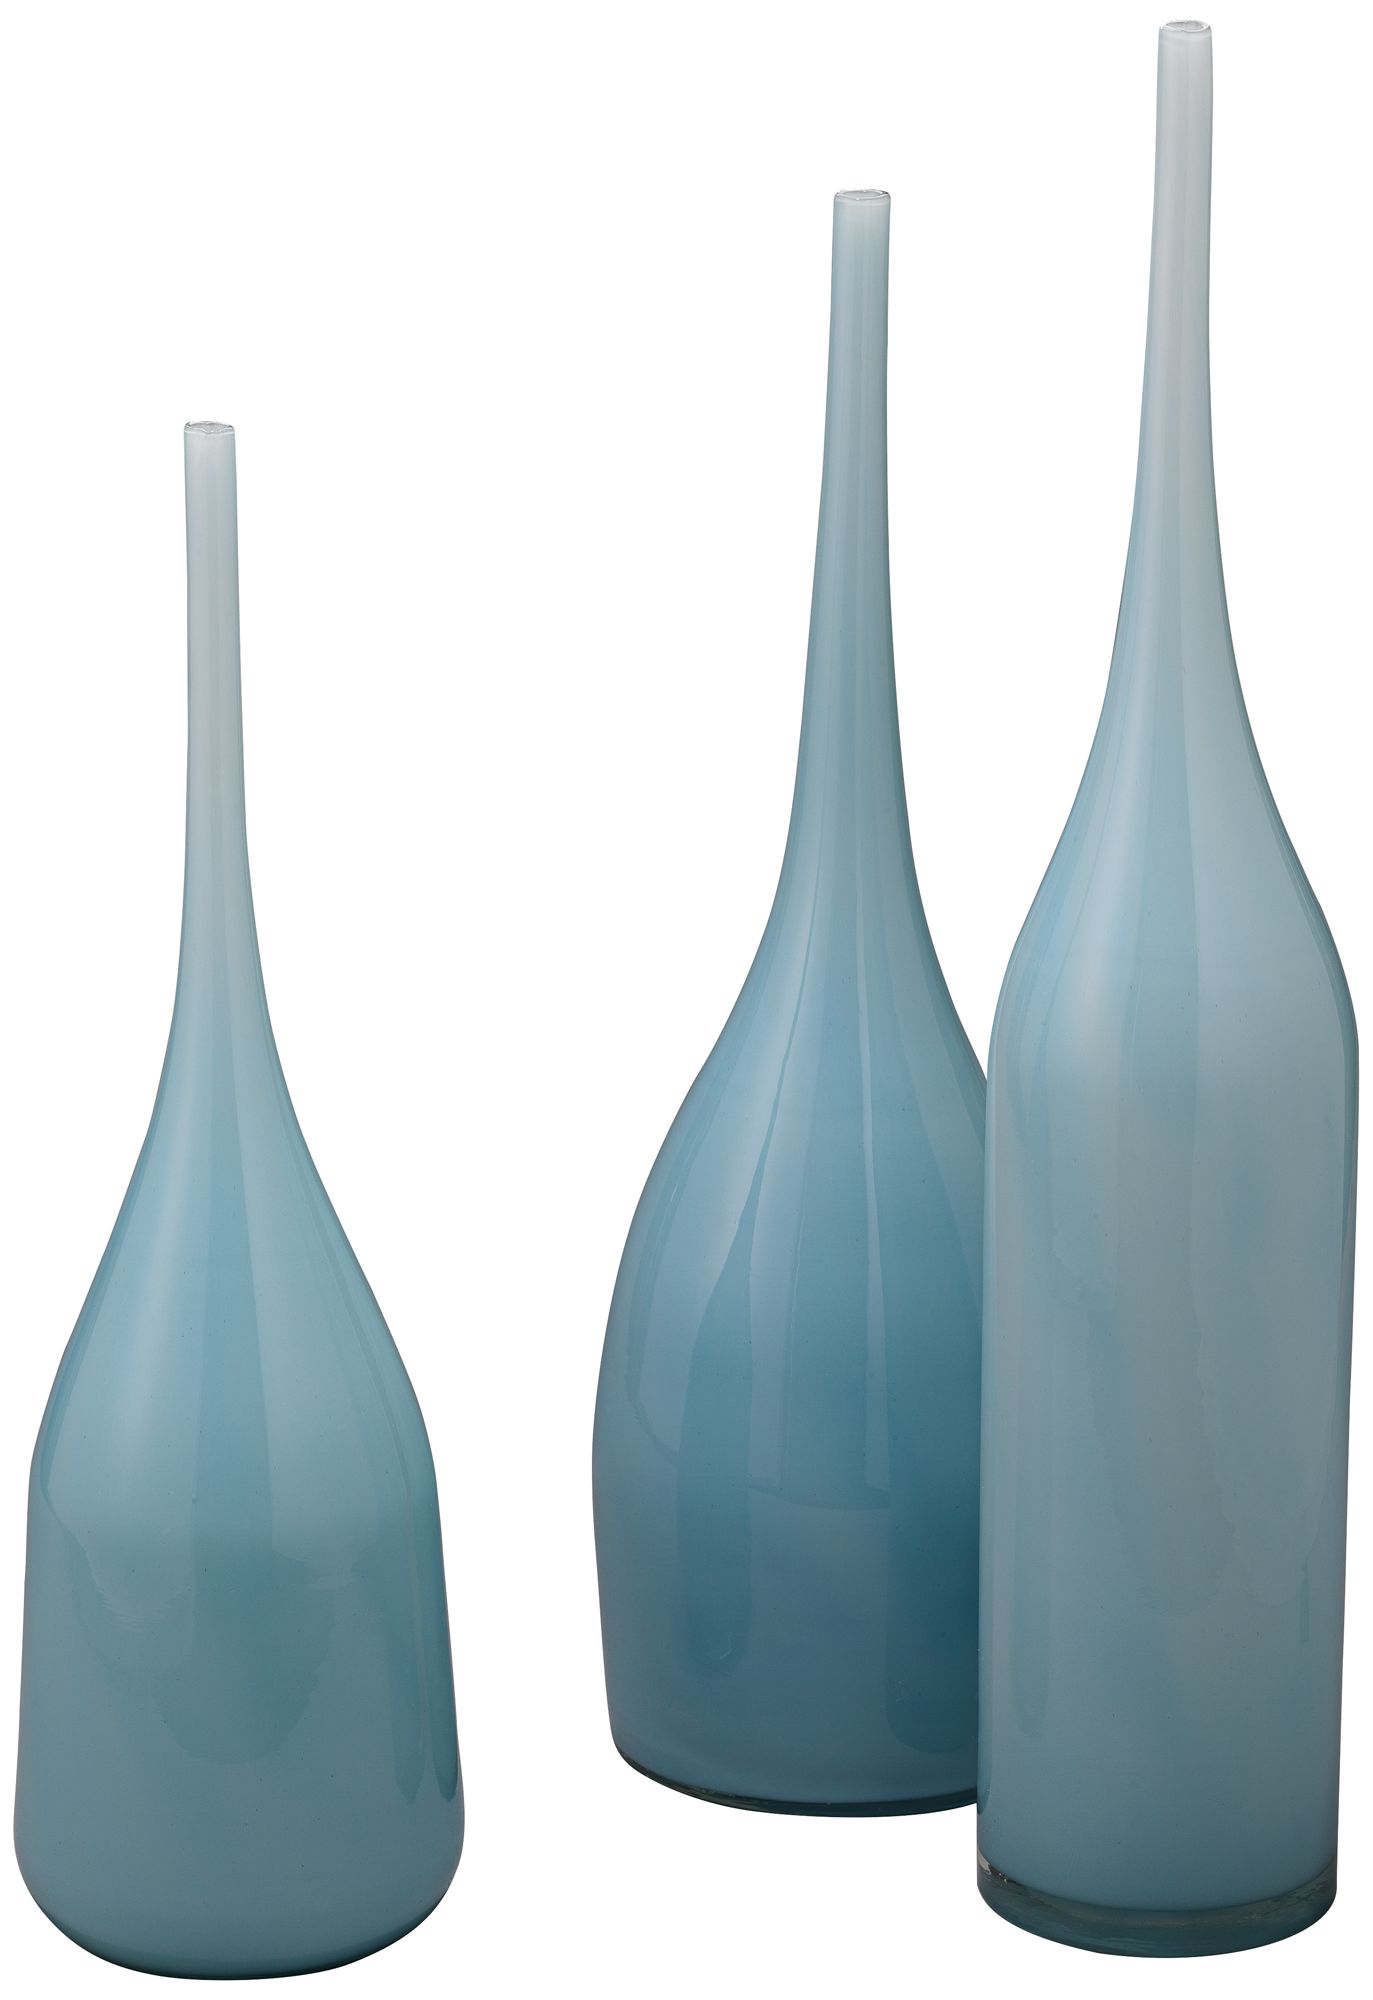 Incroyable Jamie Young Pixie Periwinkle Blue Glass 3 Piece Vase Set